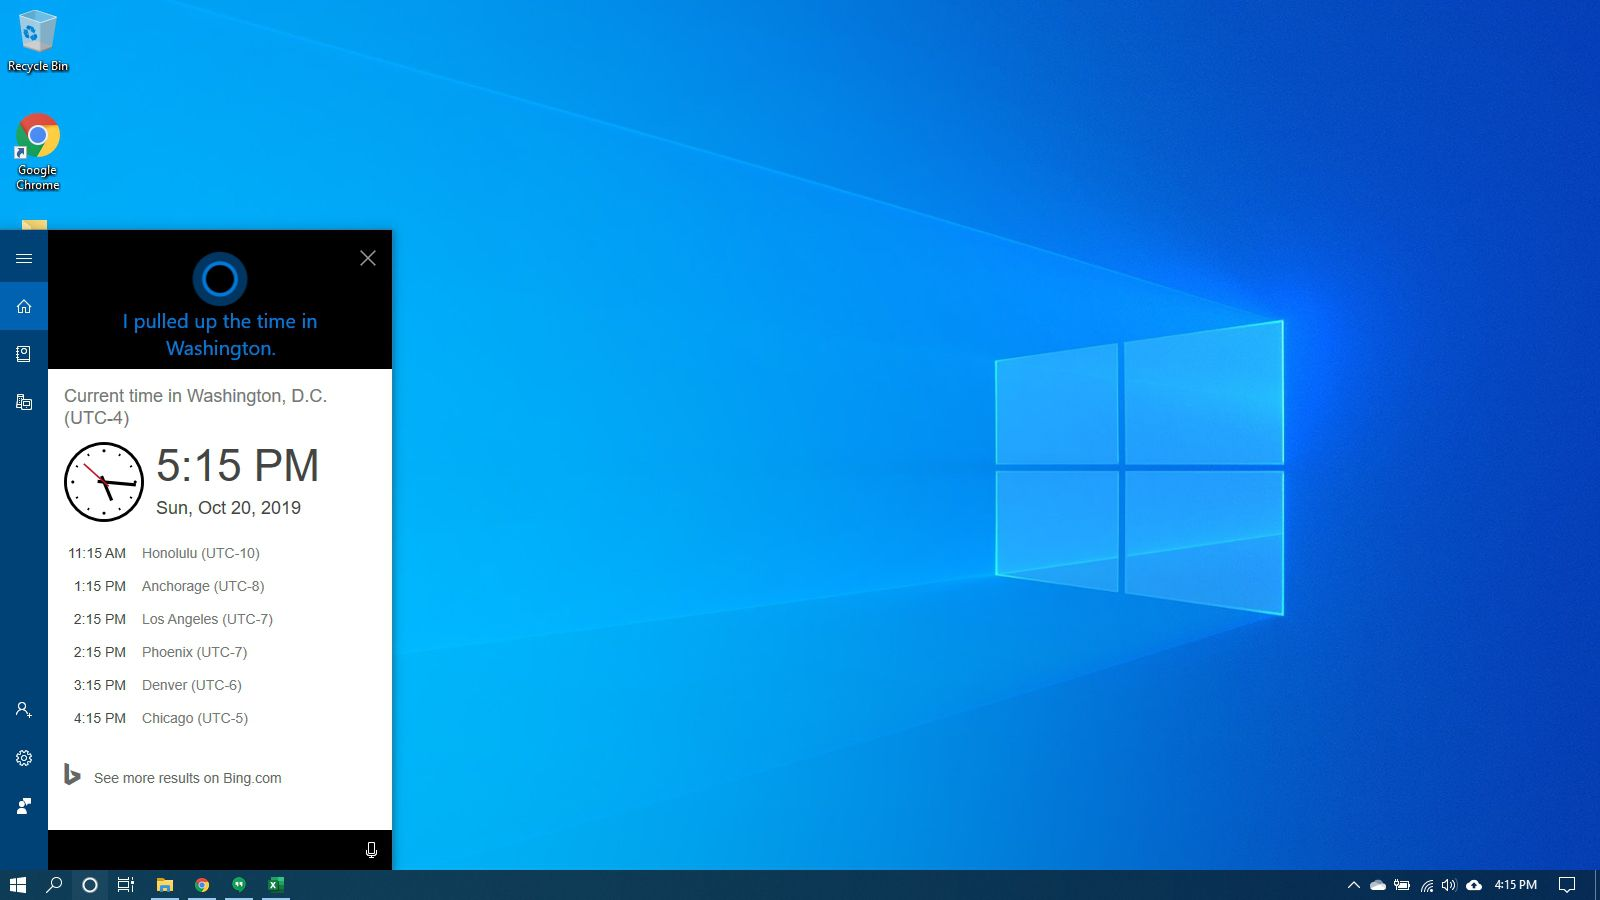 Cortana giving the time in Windows 10.